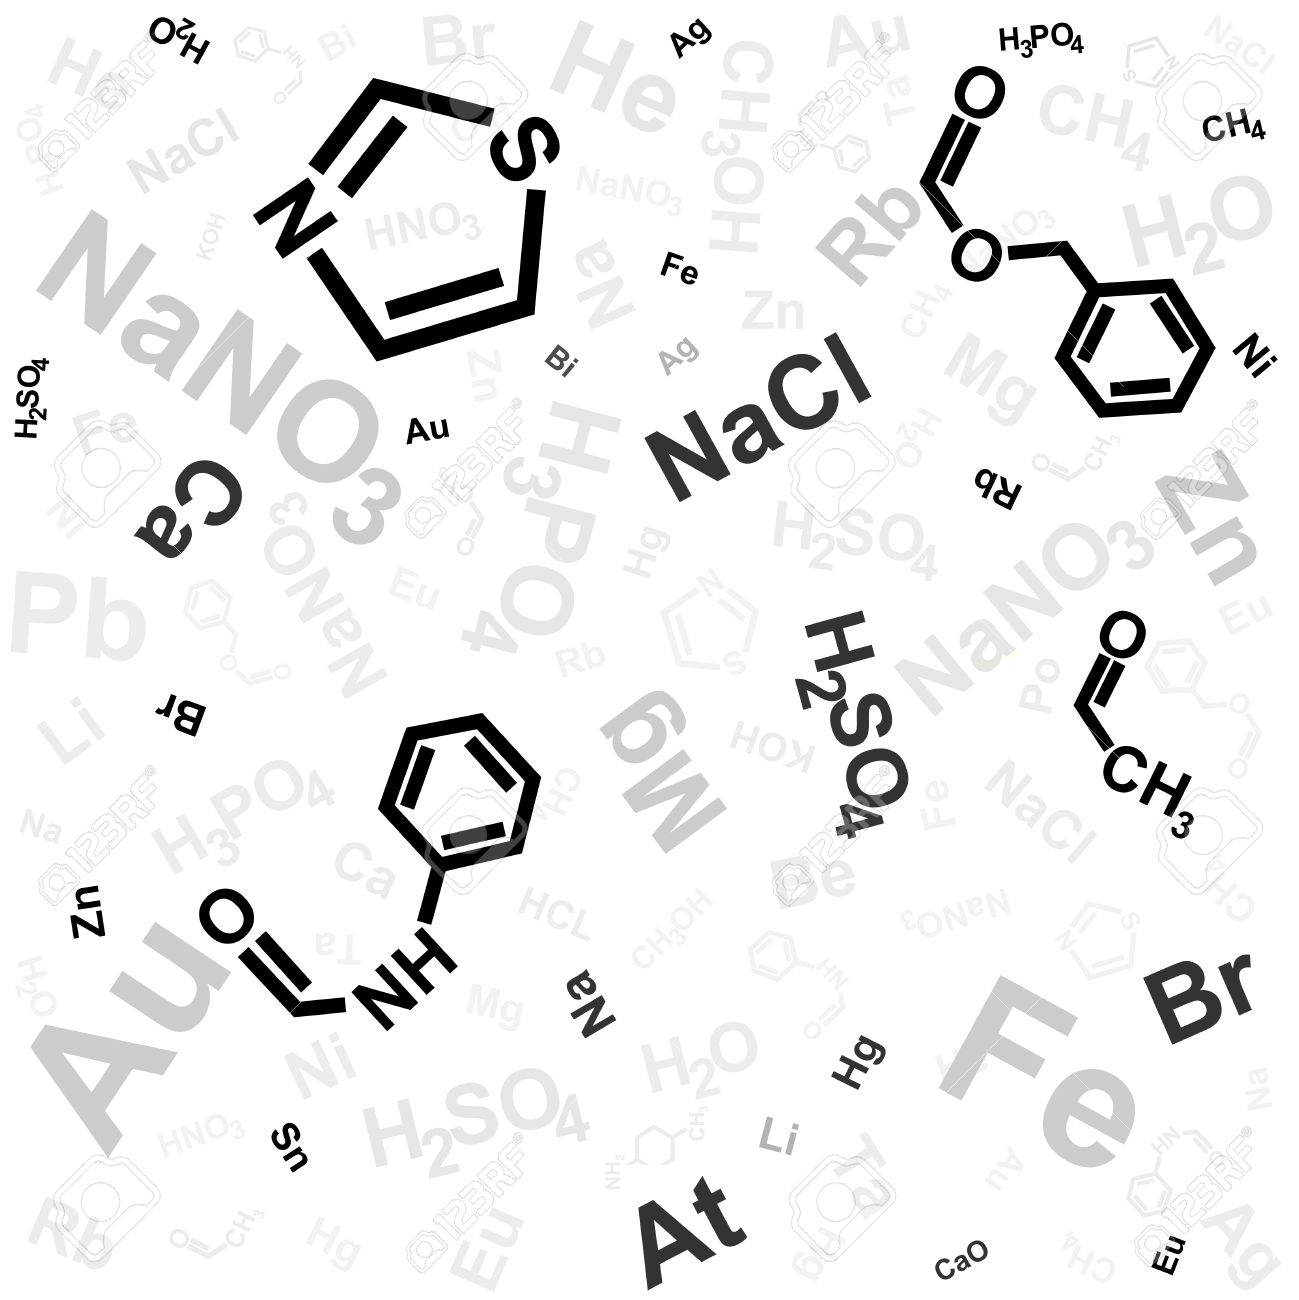 Drawing at getdrawings com. Chemical clipart organic chemistry